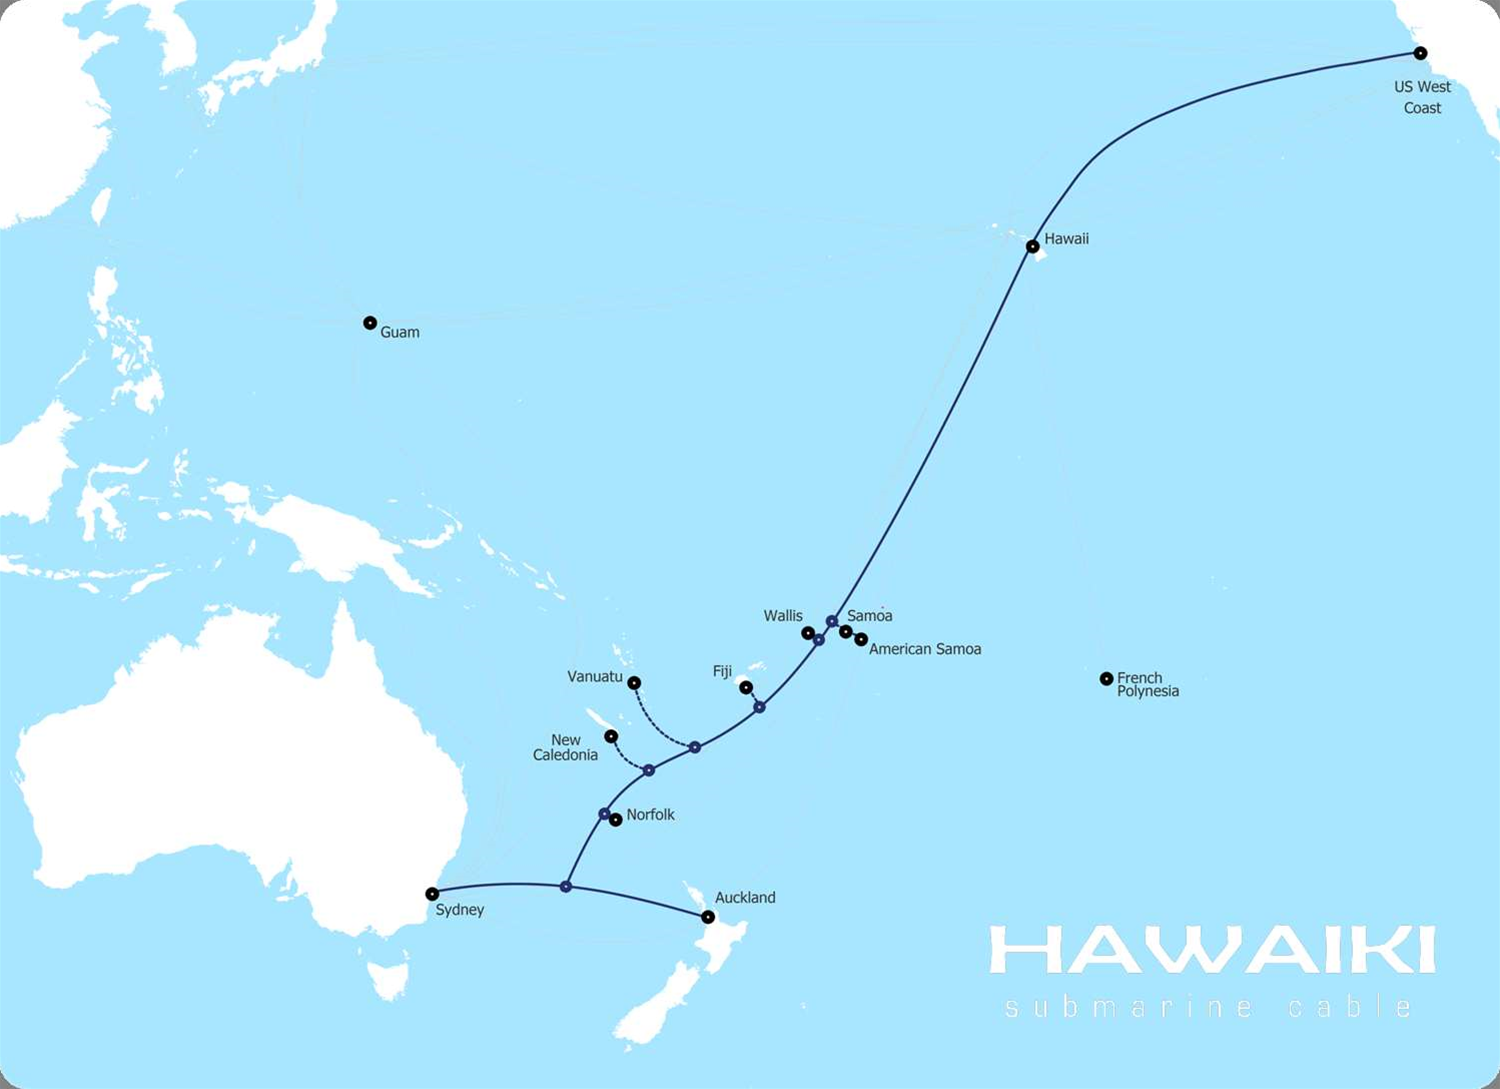 Proposed route of the Hawaiki Cable